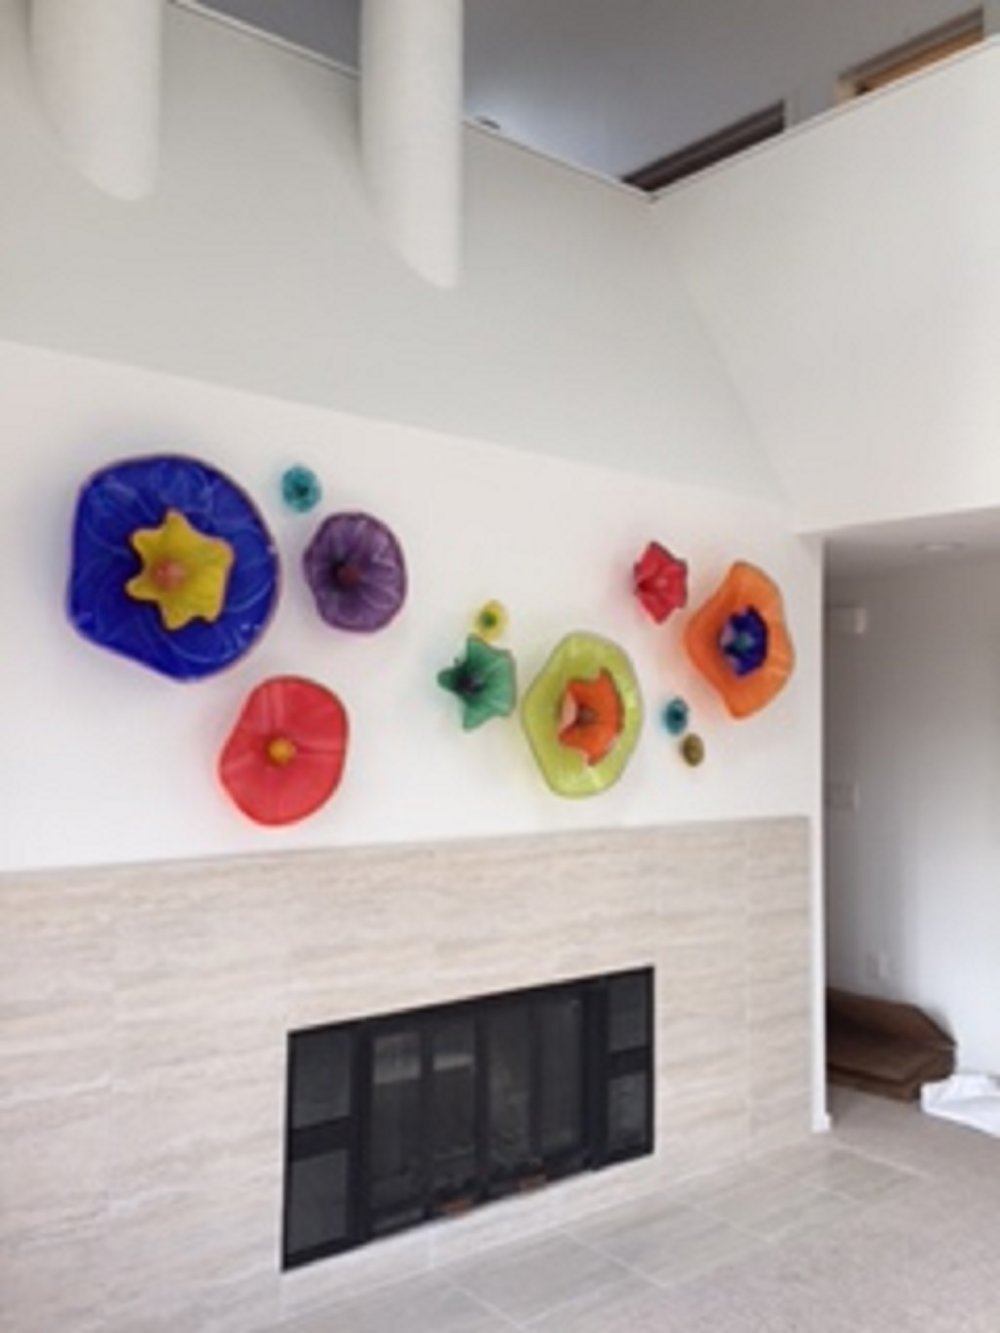 Copy of healing glass wall art sculpture